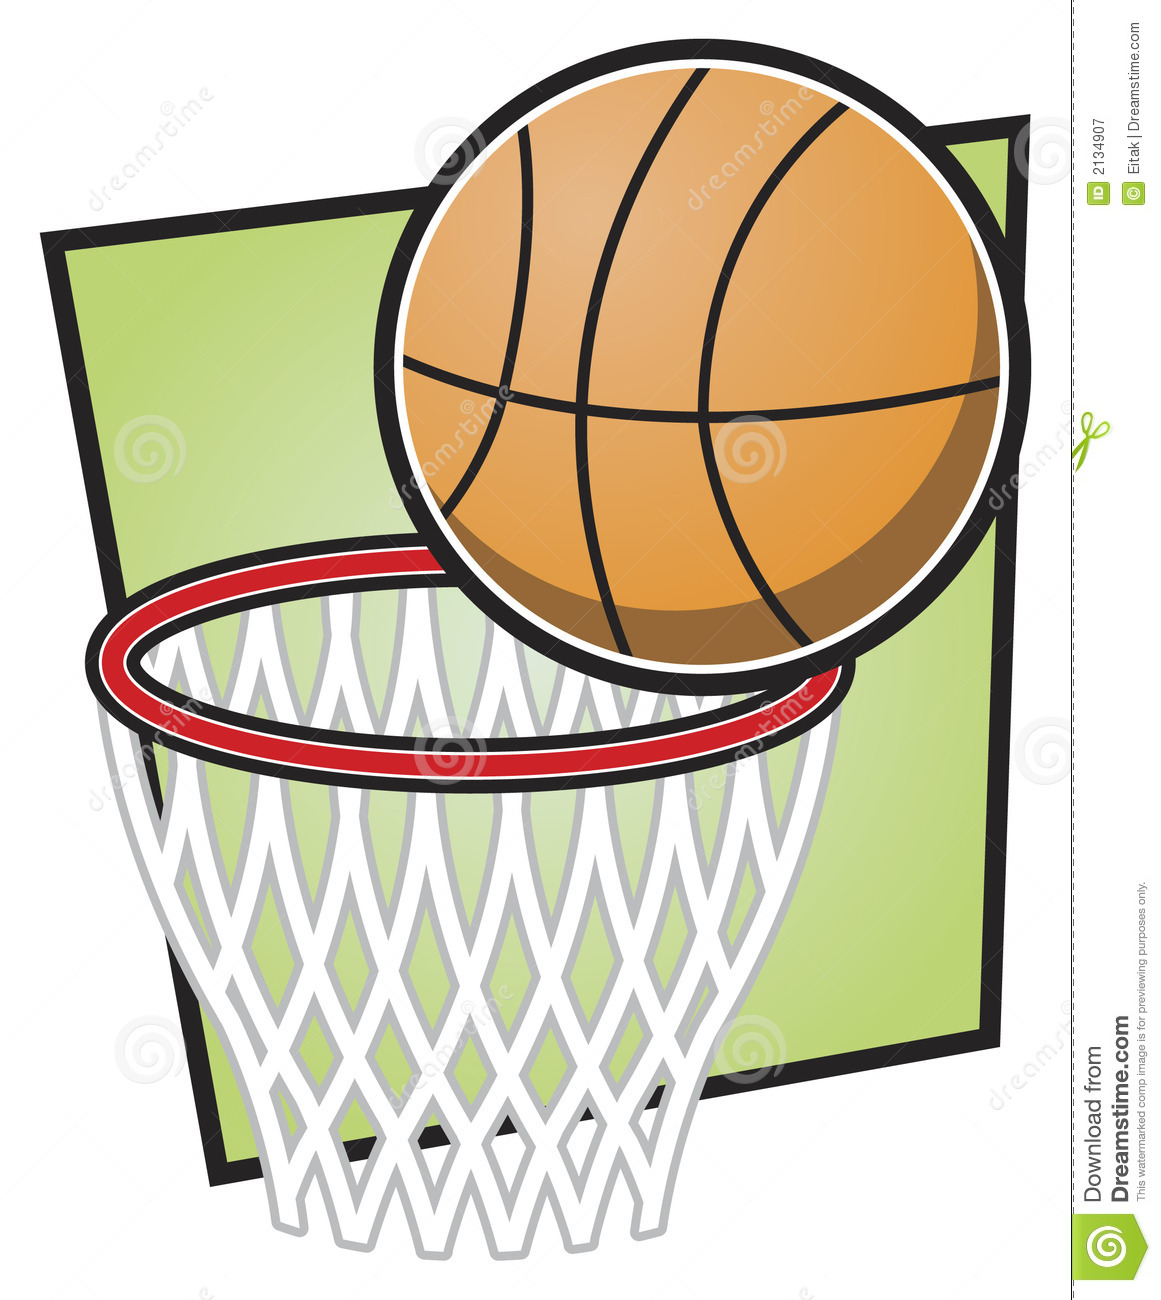 Nba Basketball Clipart